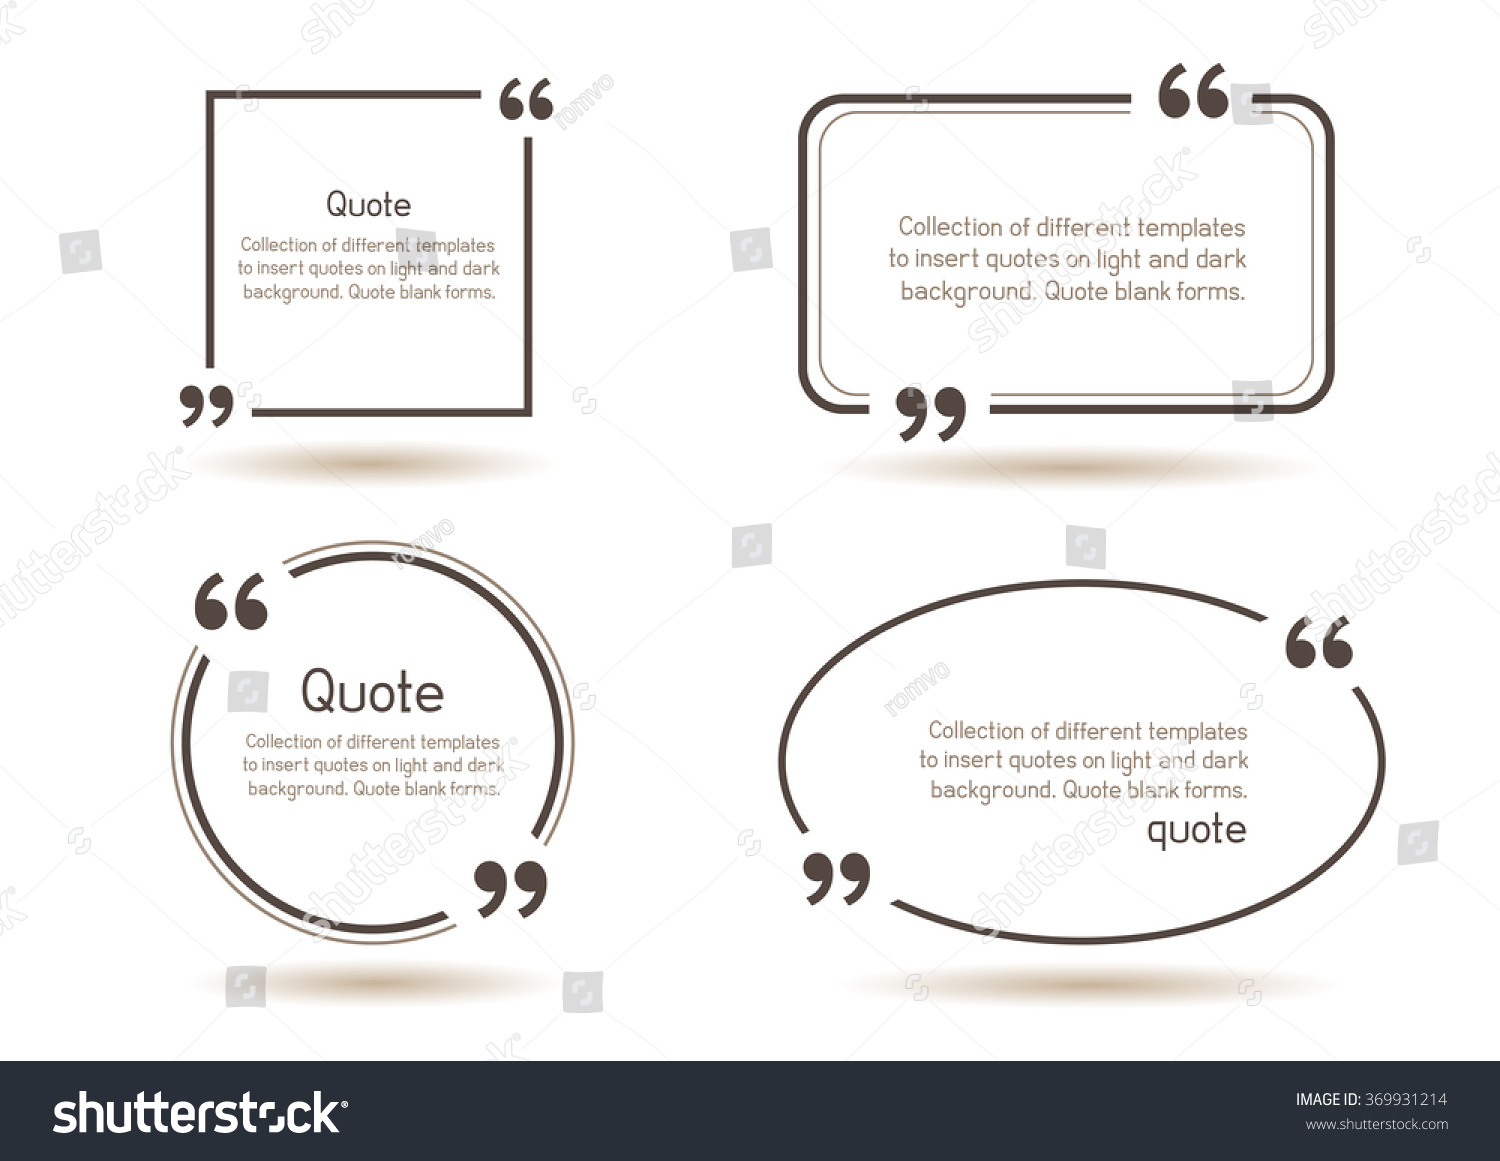 templates writing quote round square oval stock vector  templates for writing quote round square oval rectangular quotes forms on white background